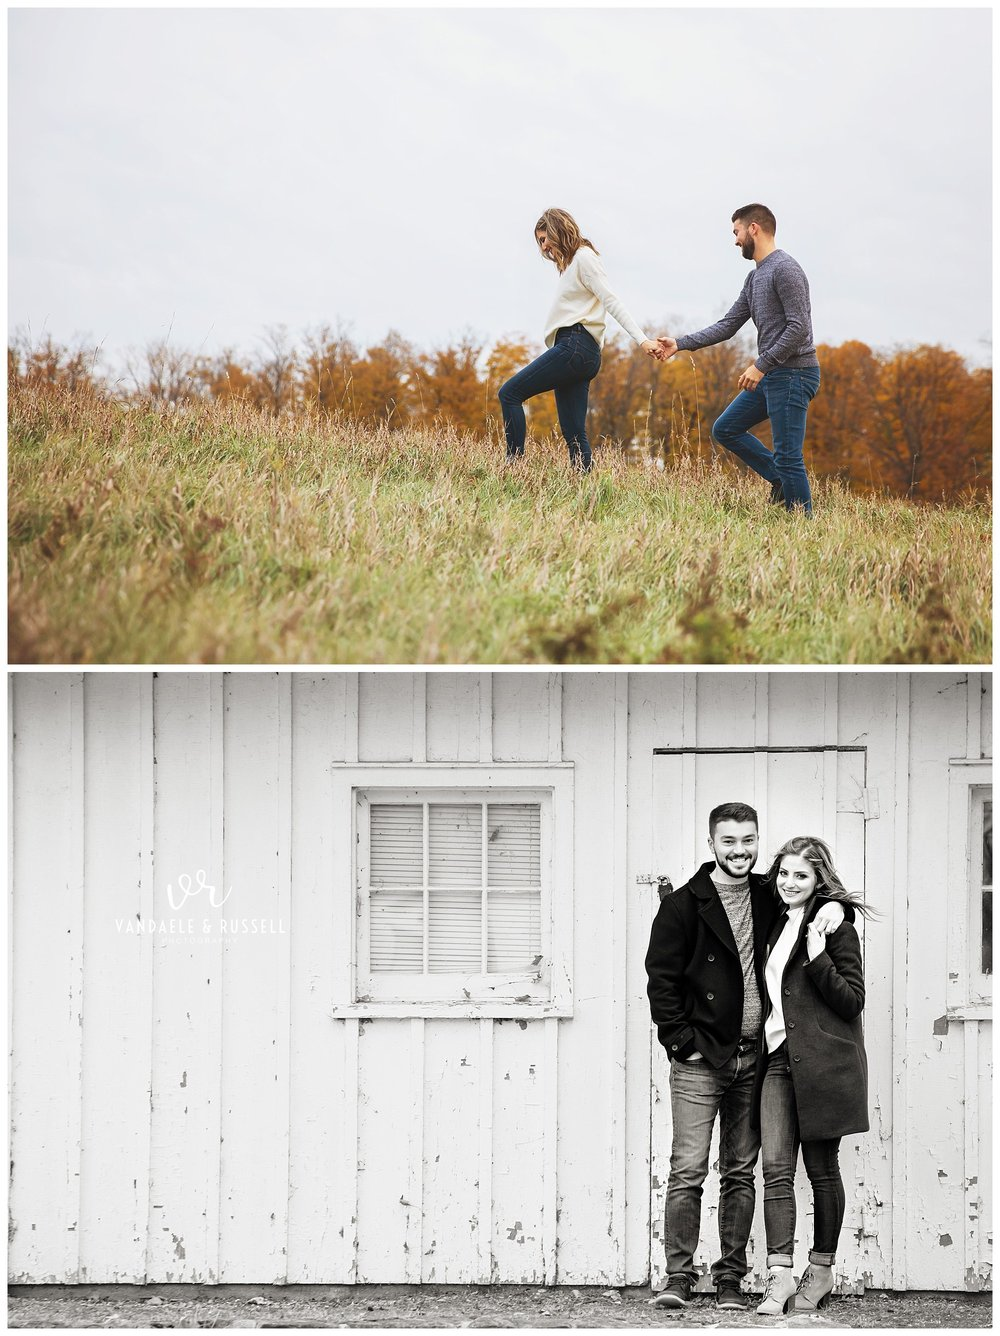 VanDaele-Russell-Photography-Scotsdale-Farm-Engagement_0261.jpg